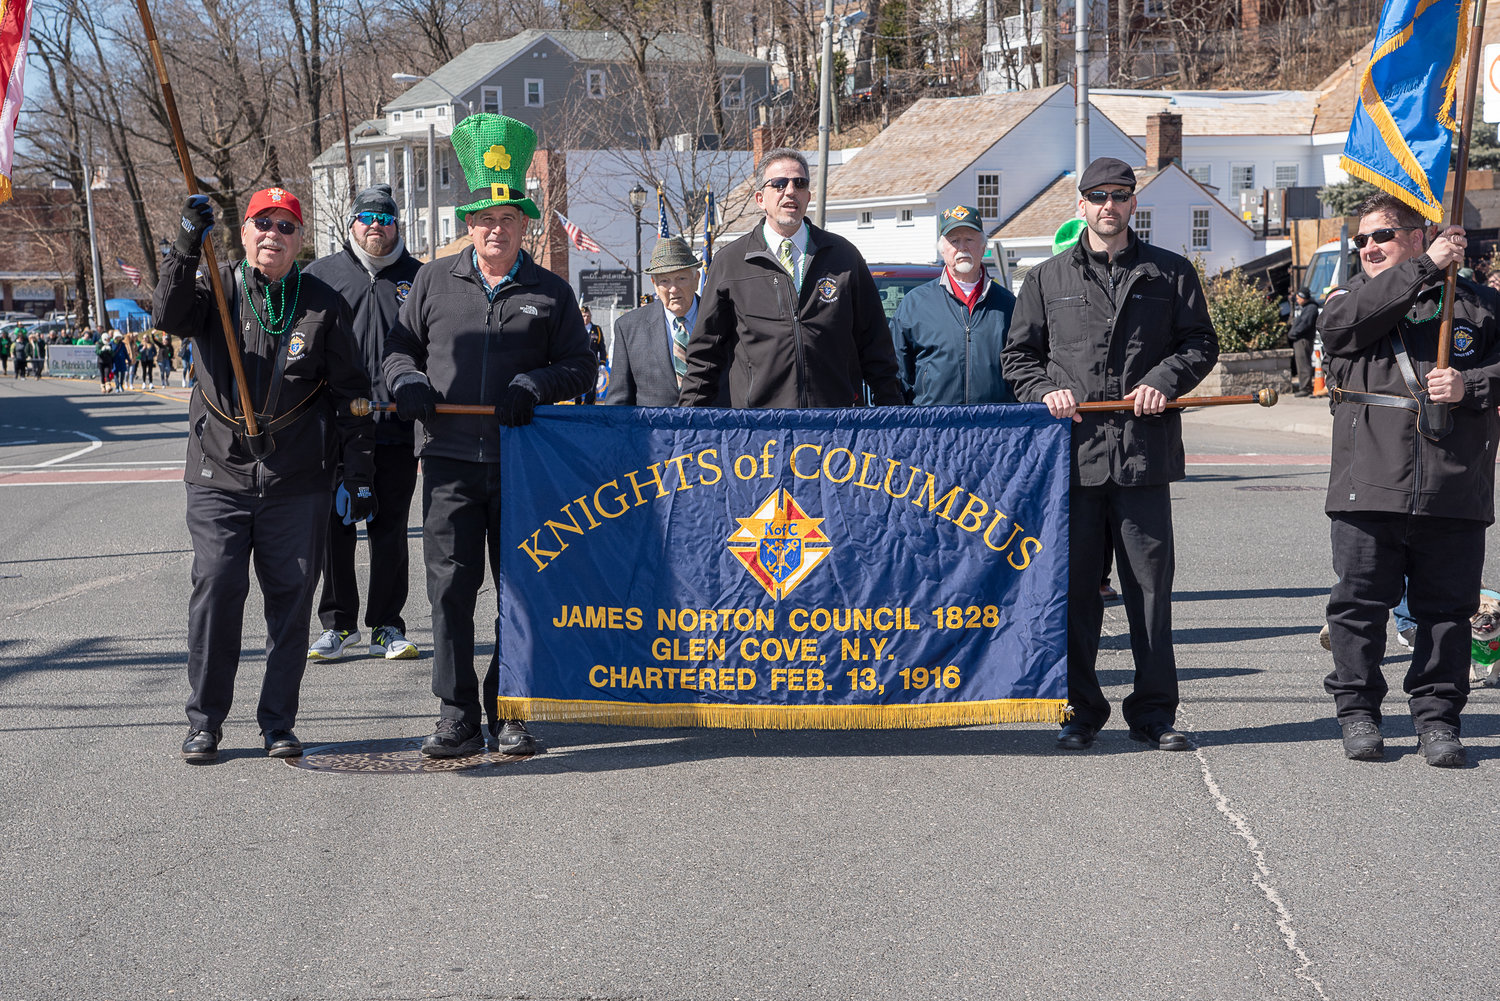 Members of the James Norton Council 1828 Knights of Columbus were proud to march in the parade.